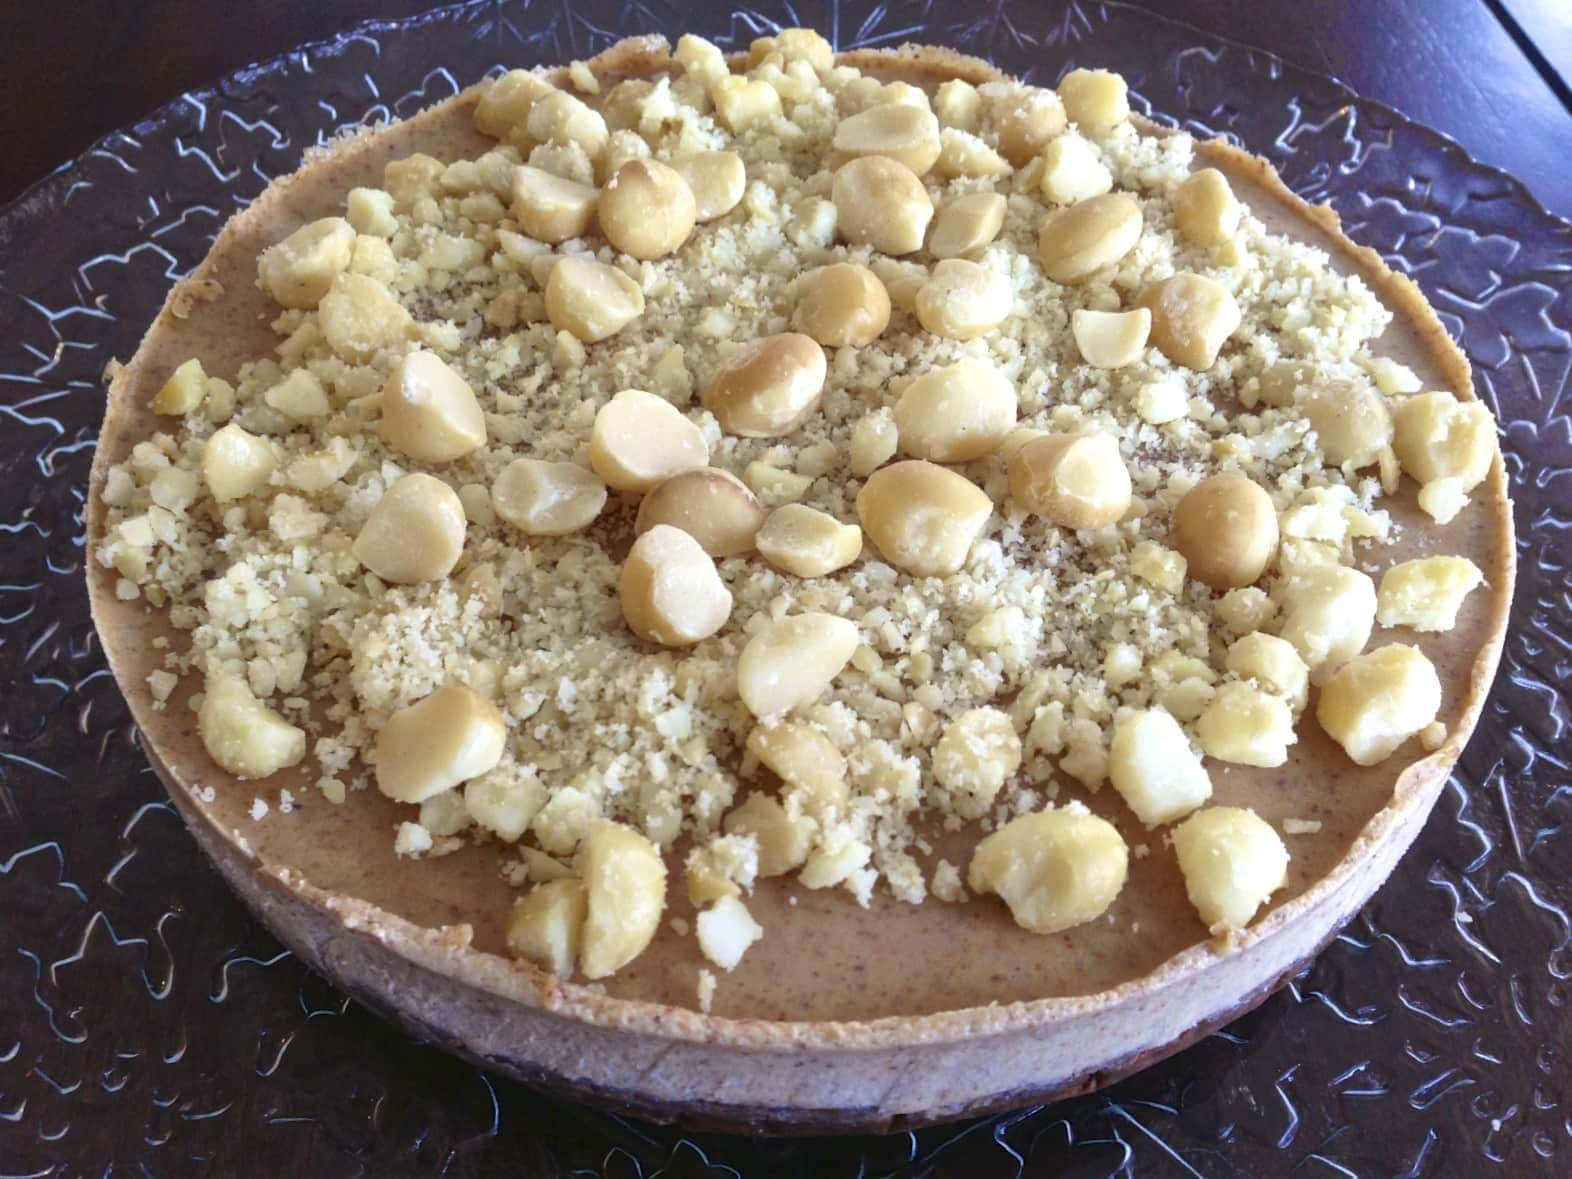 close up of a large complete paleo macadamia nut pie topped with full and chopped nuts